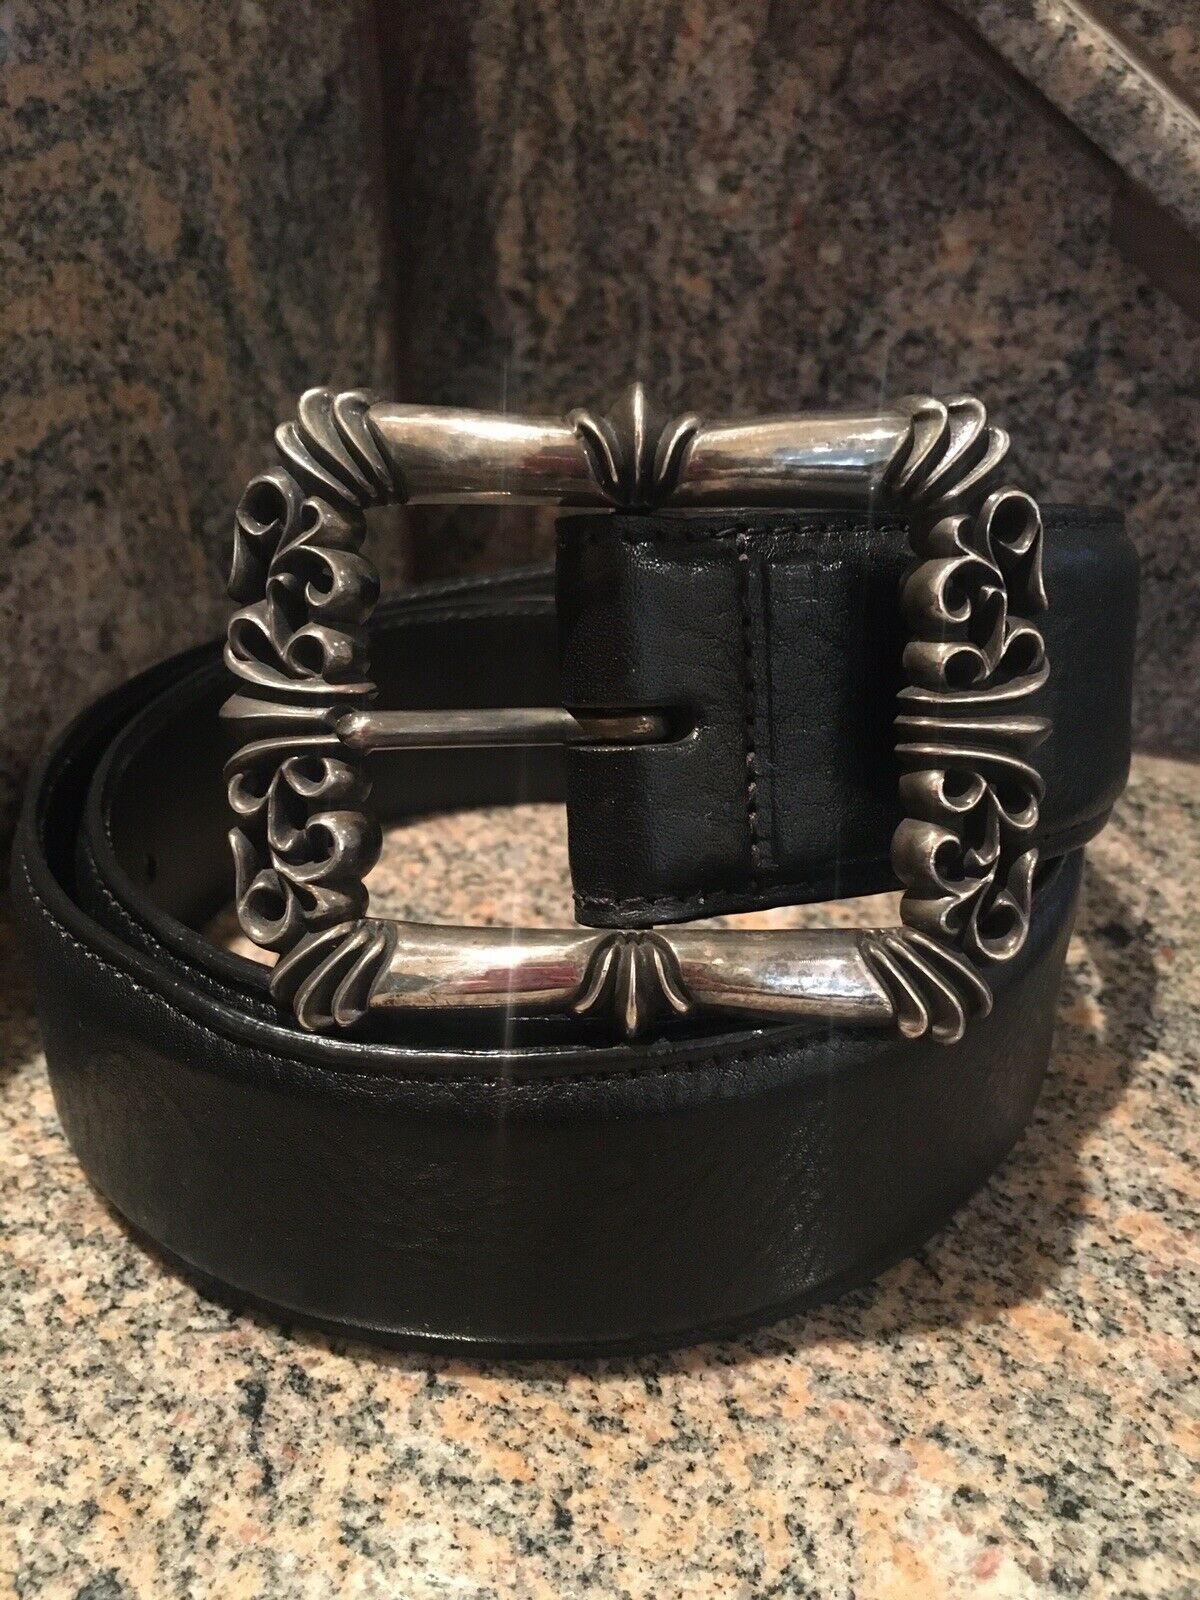 Authentic Chrome Hearts Classic/Scroll Buckle with Black Leather Belt